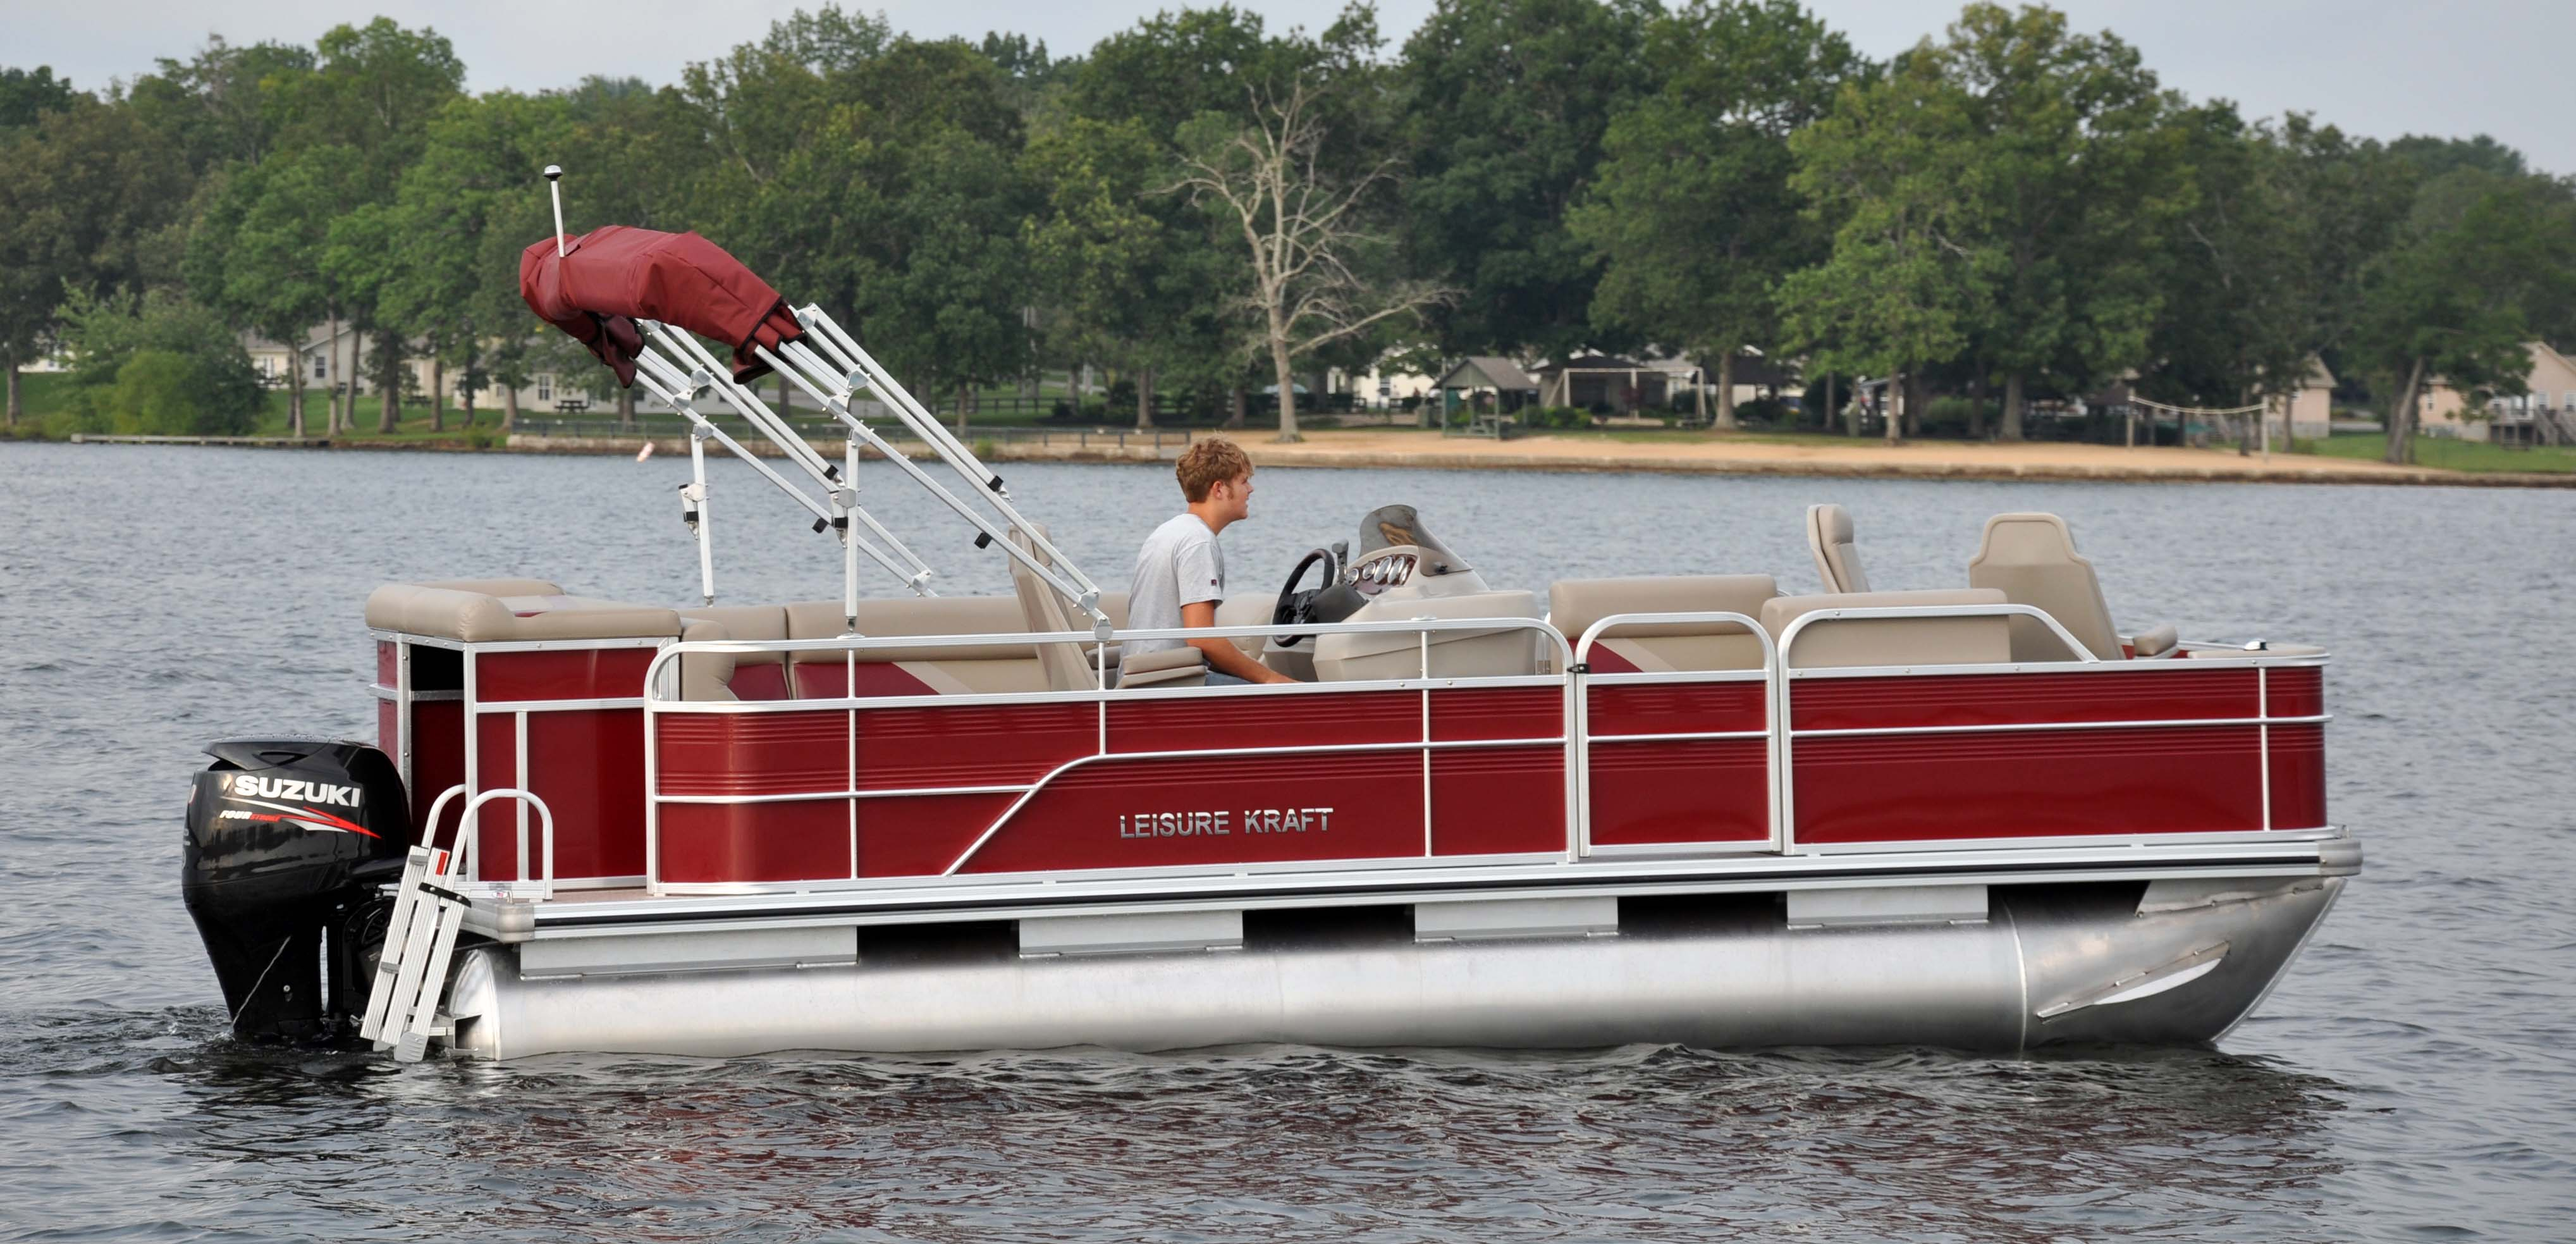 Pontoon Boats Sale: Up to 70% Off | Best Discount Price ...